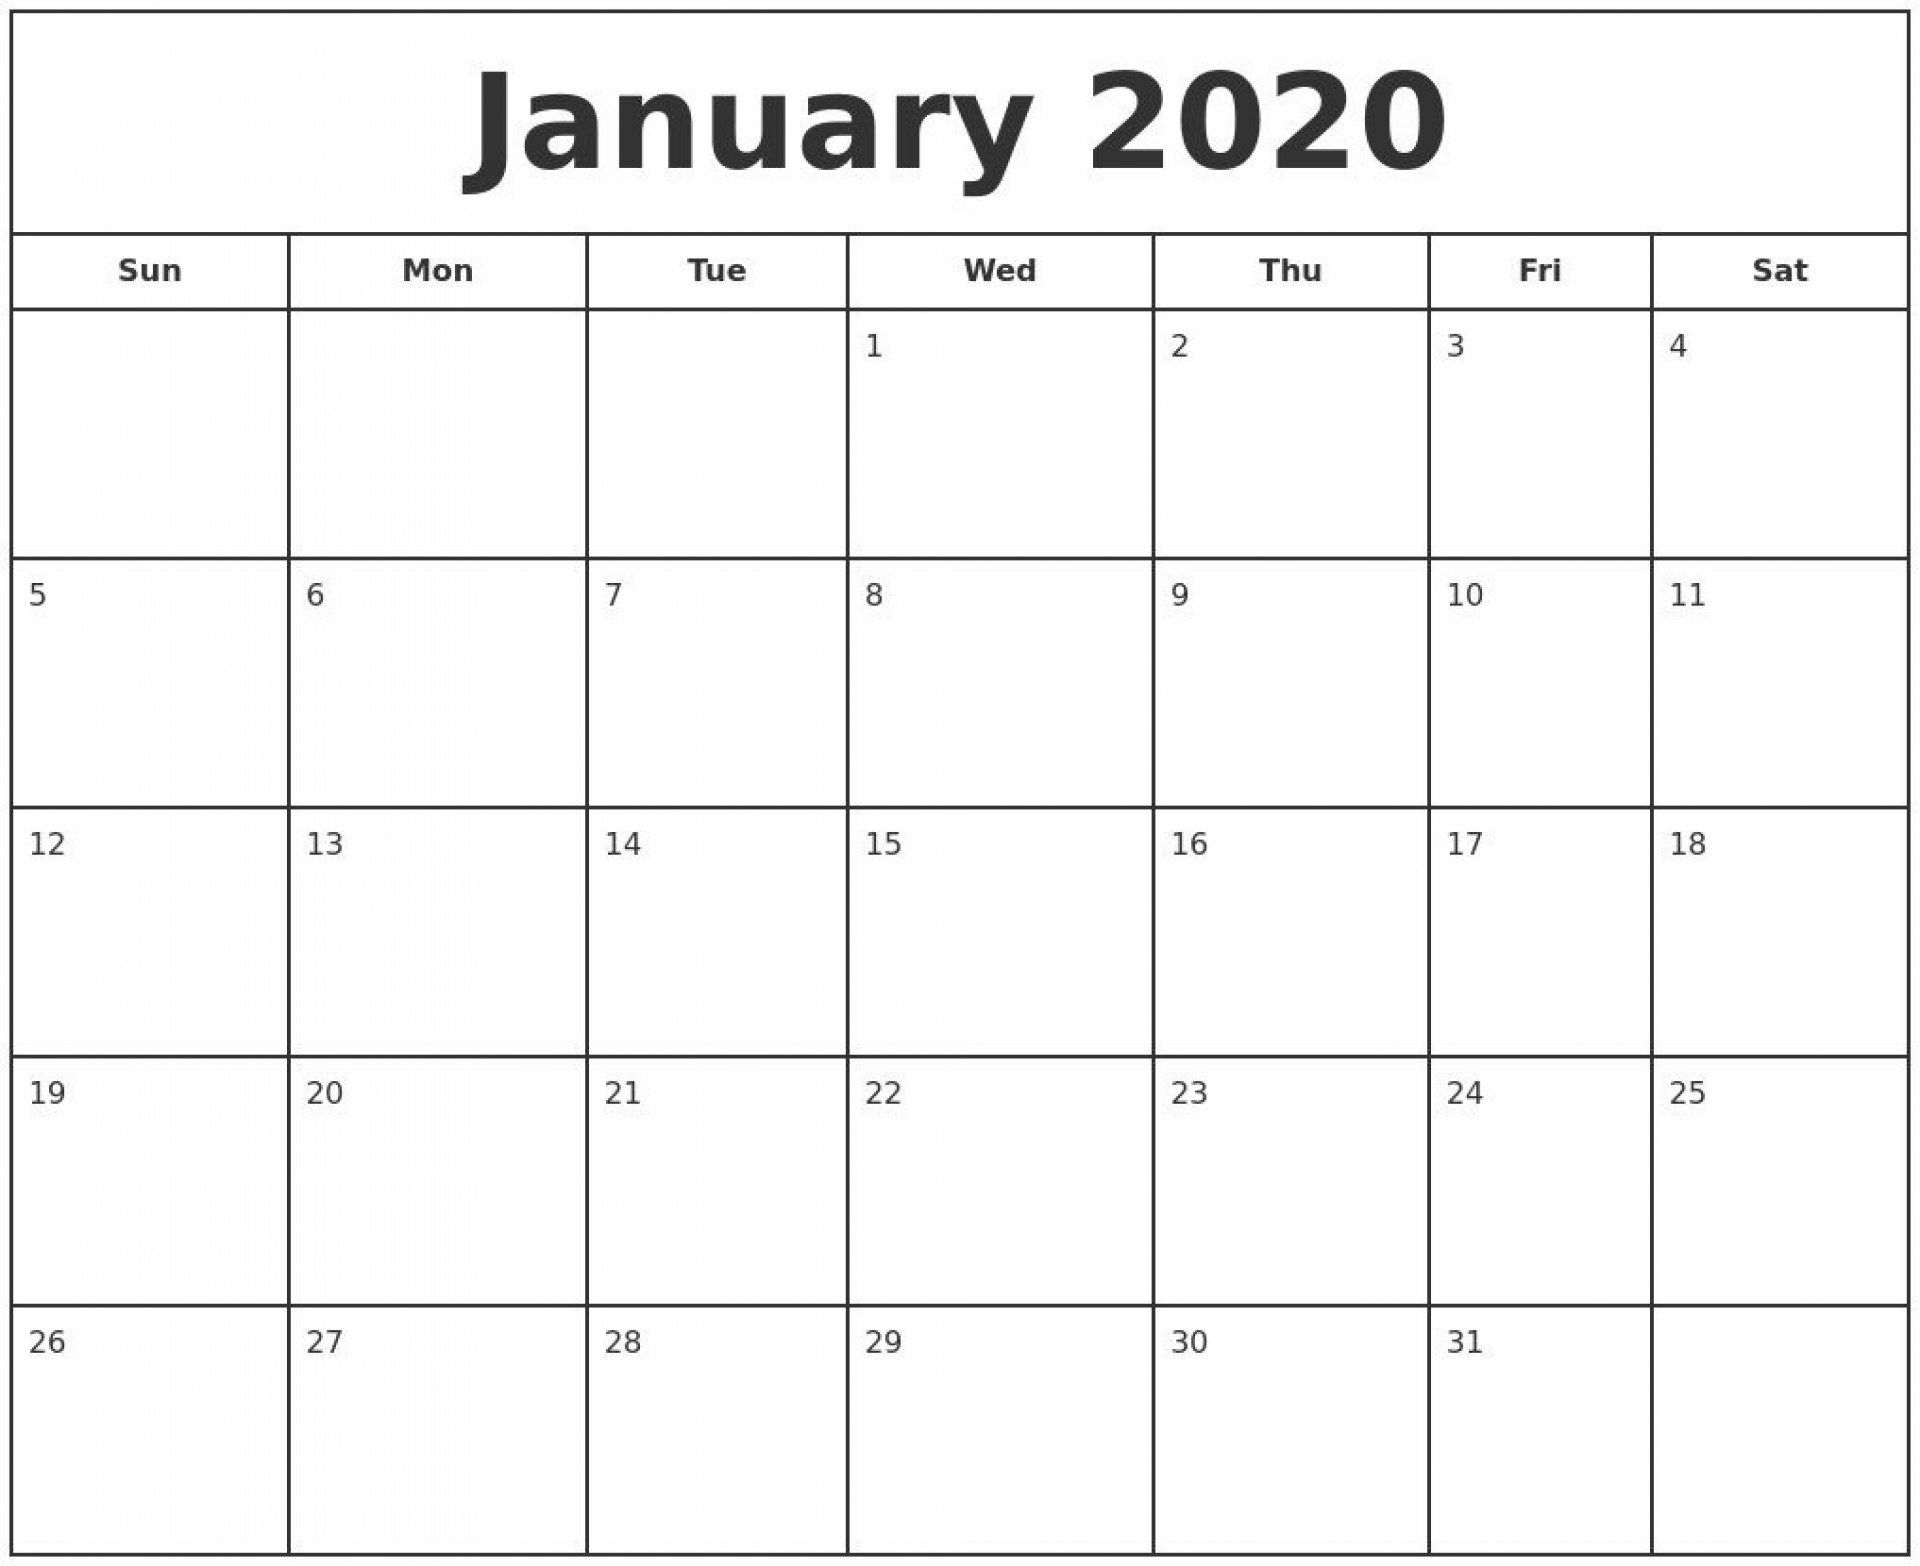 006 Remarkable Monthly Calendar Template 2020 High Def  Editable Free Word Excel May1920